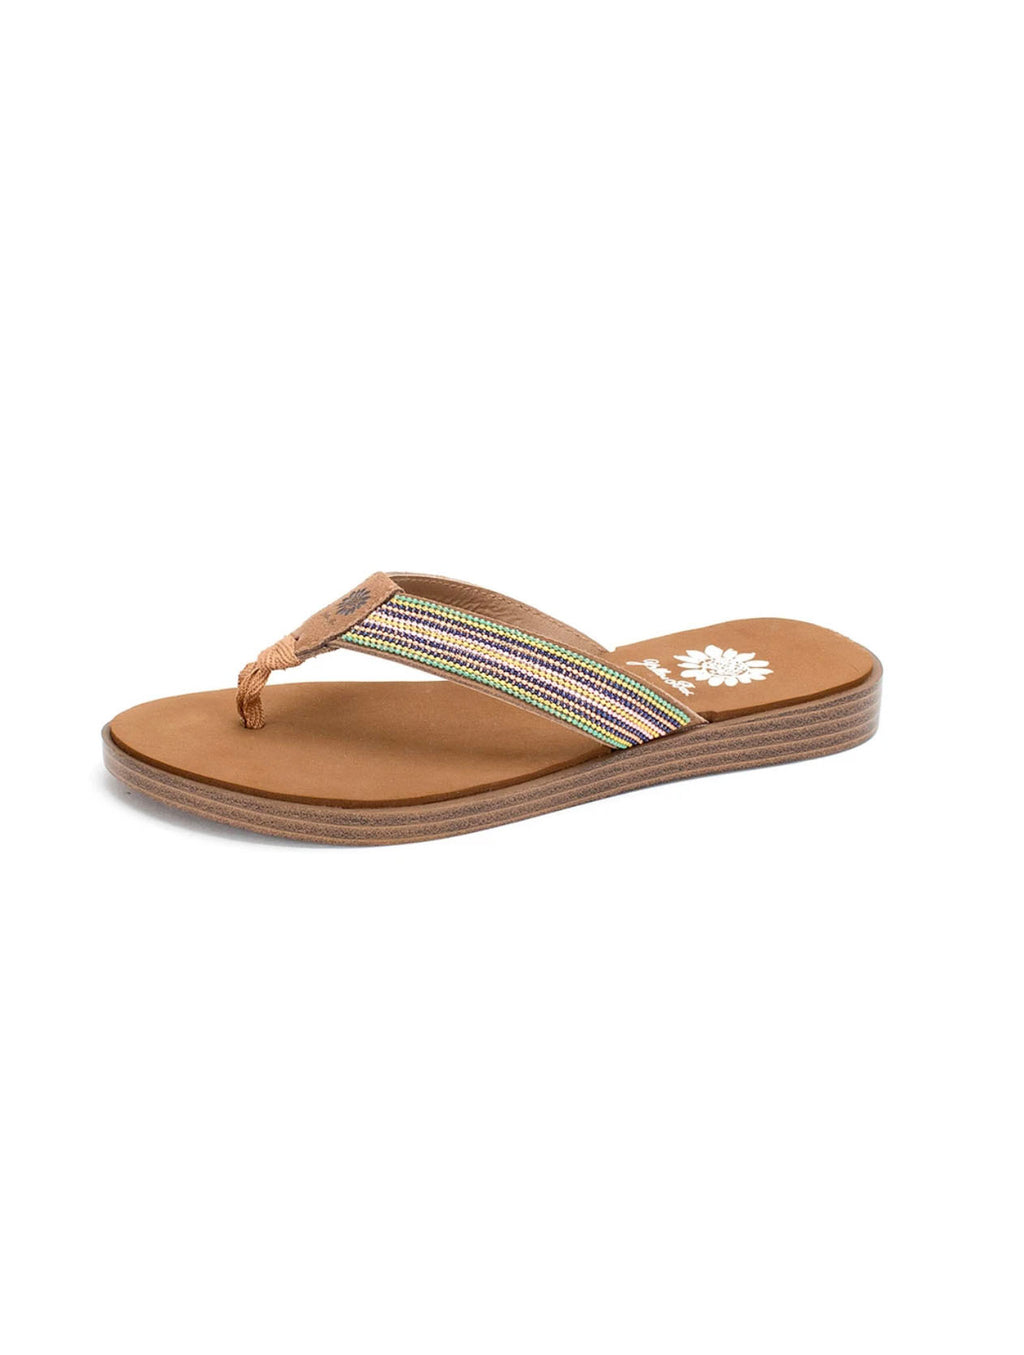 Yellow Box Dainty Sandal in Multi